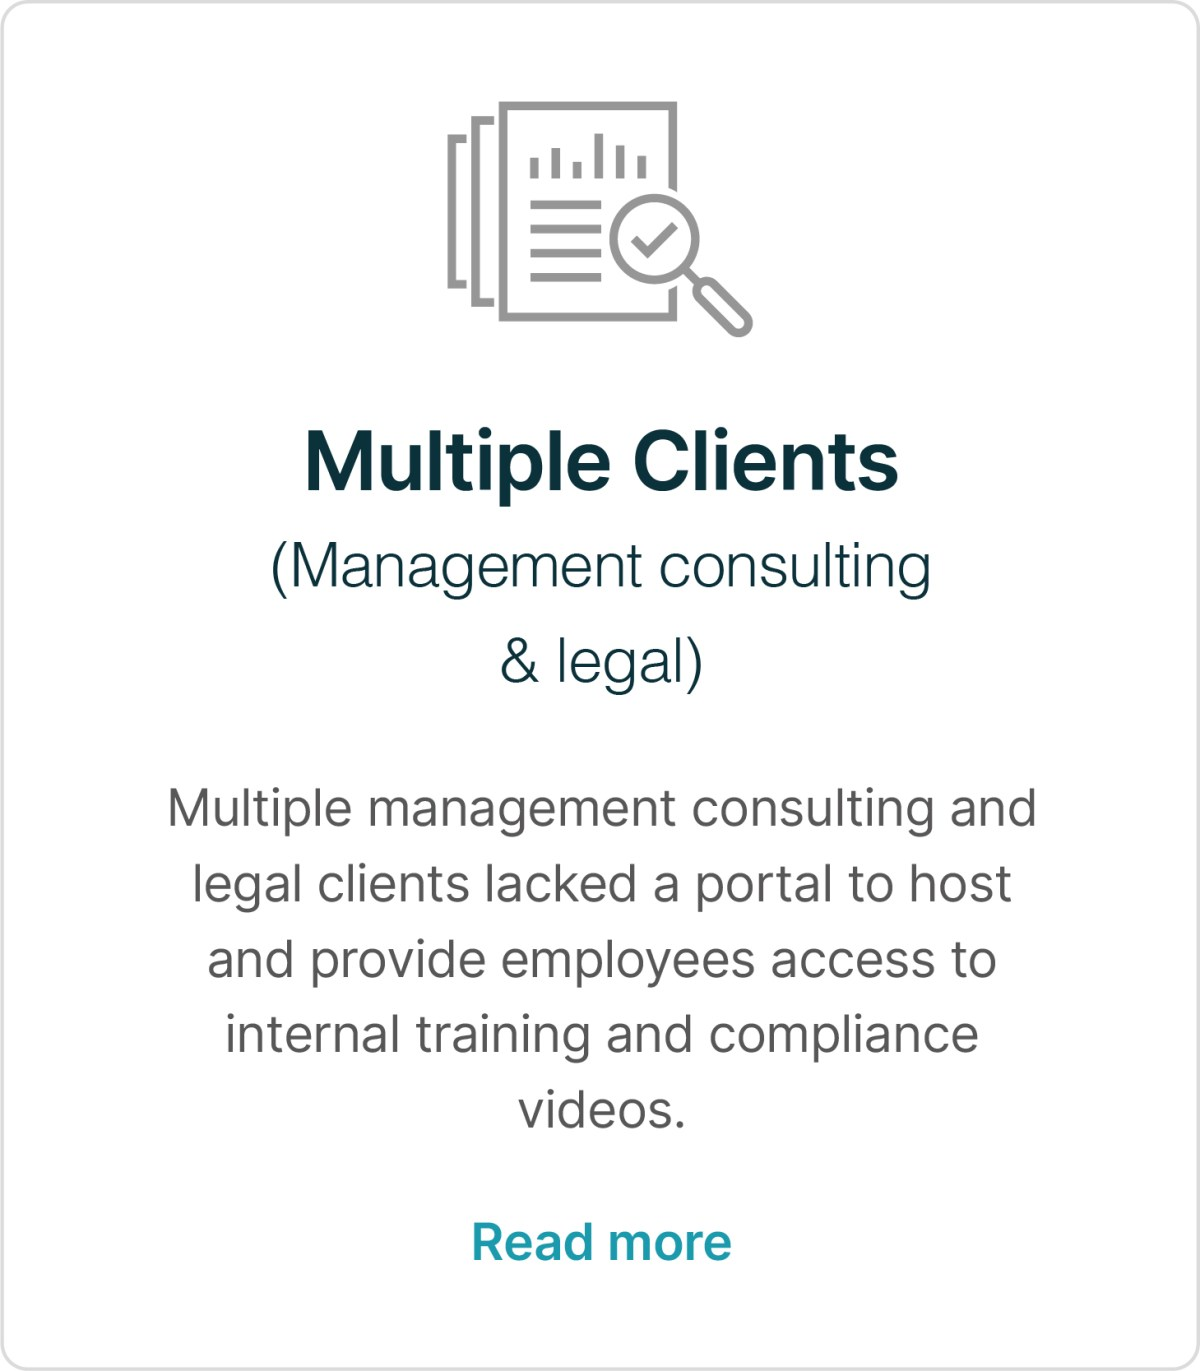 MultipleClients-ManagementConsulting-Legal